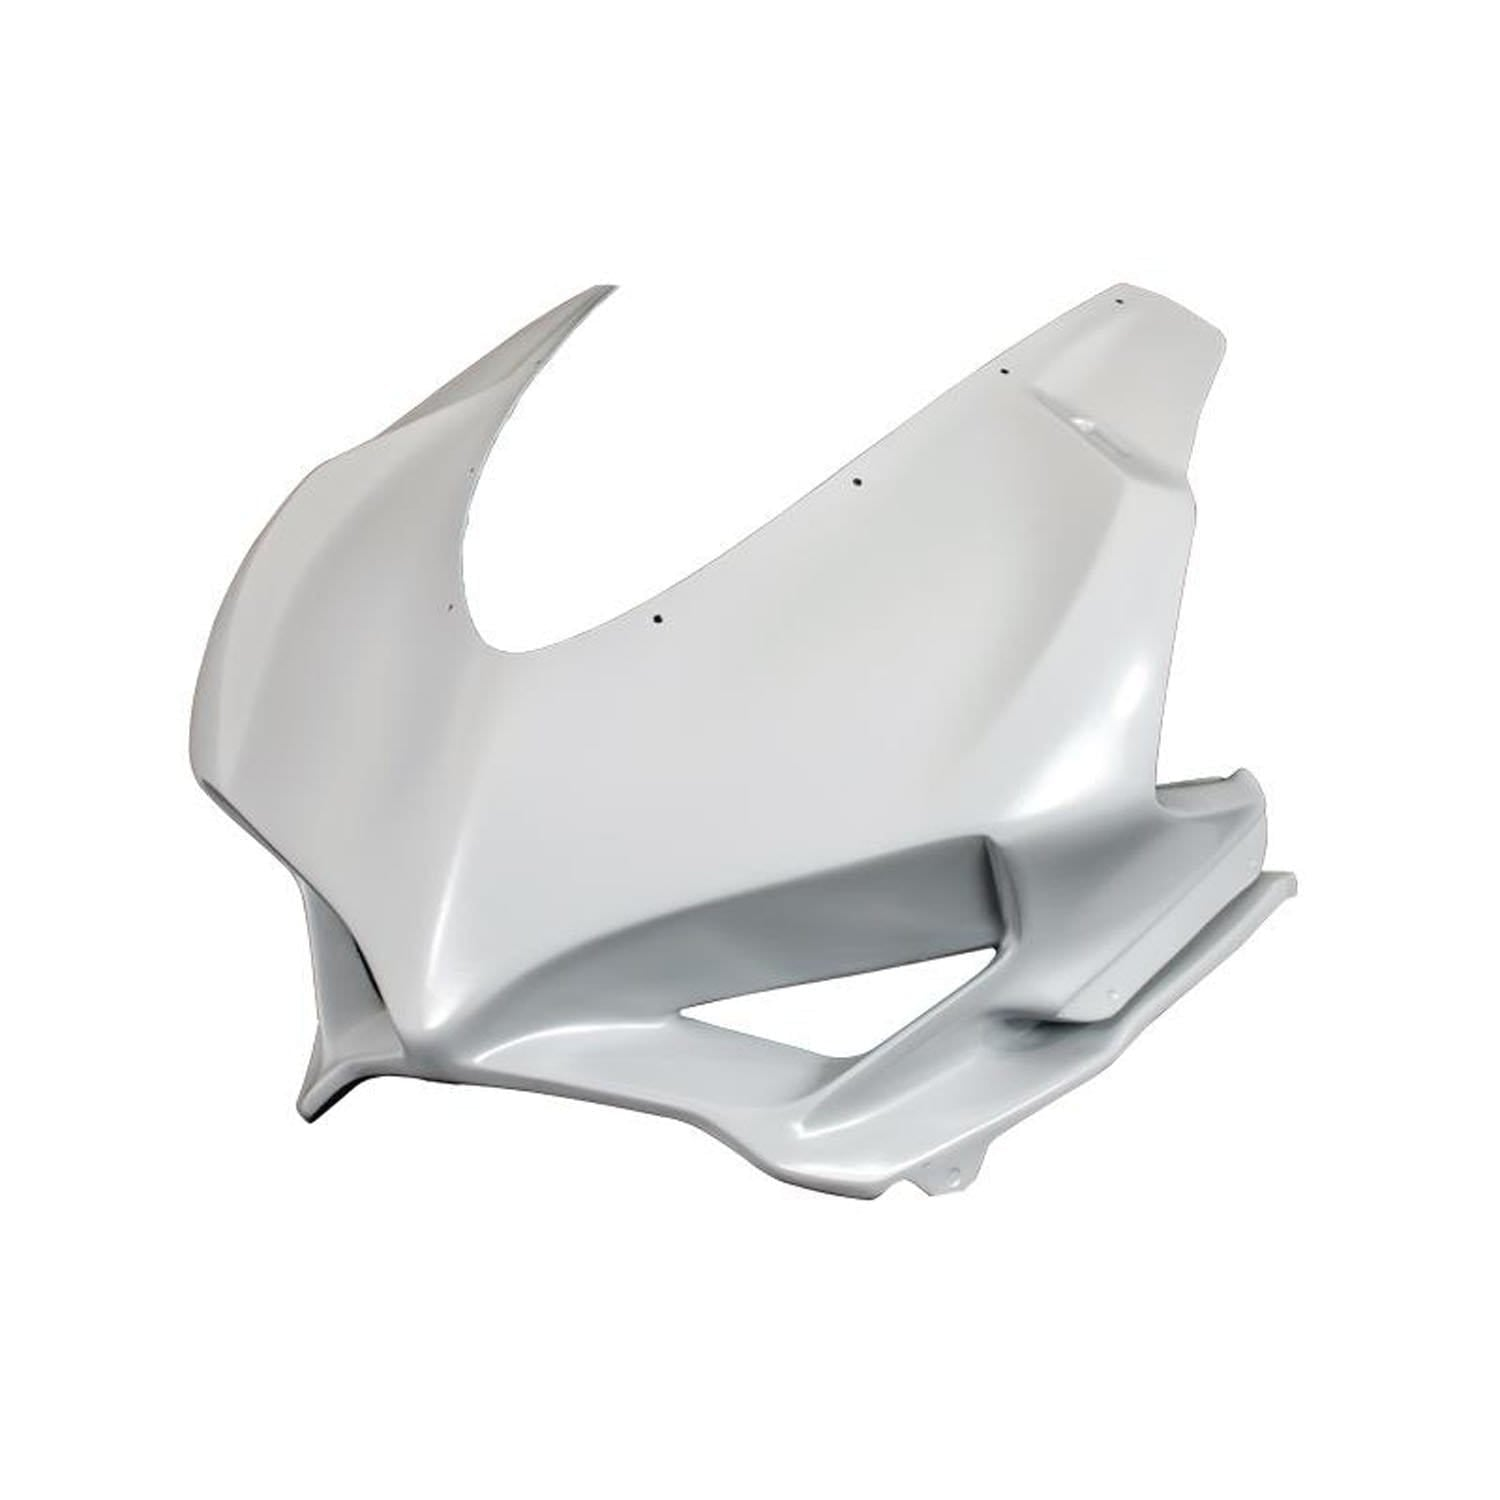 Ducati 1299 Panigale Upper Fairing Front - Pro Series - Woodcraft Technologies - Motorcycle Parts